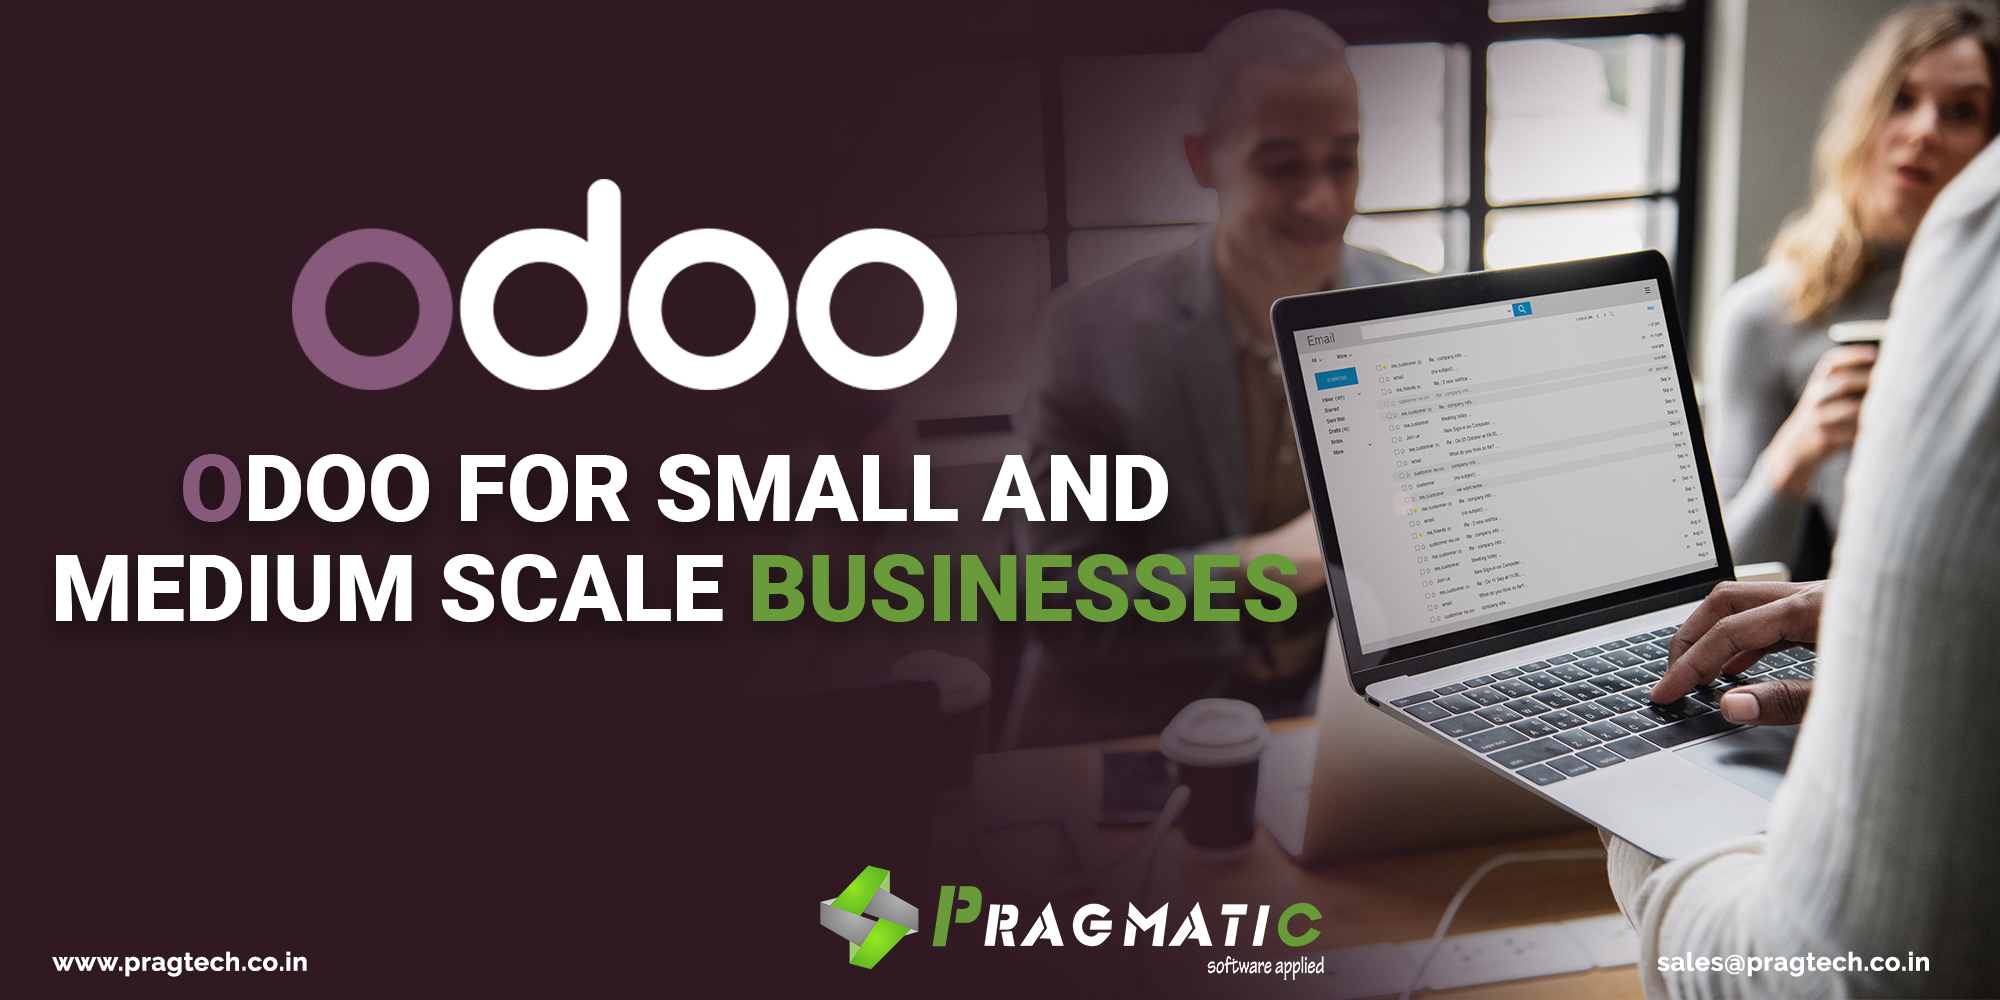 Odoo for Small and Medium Scale Businesses - Case Studies - Pragtech